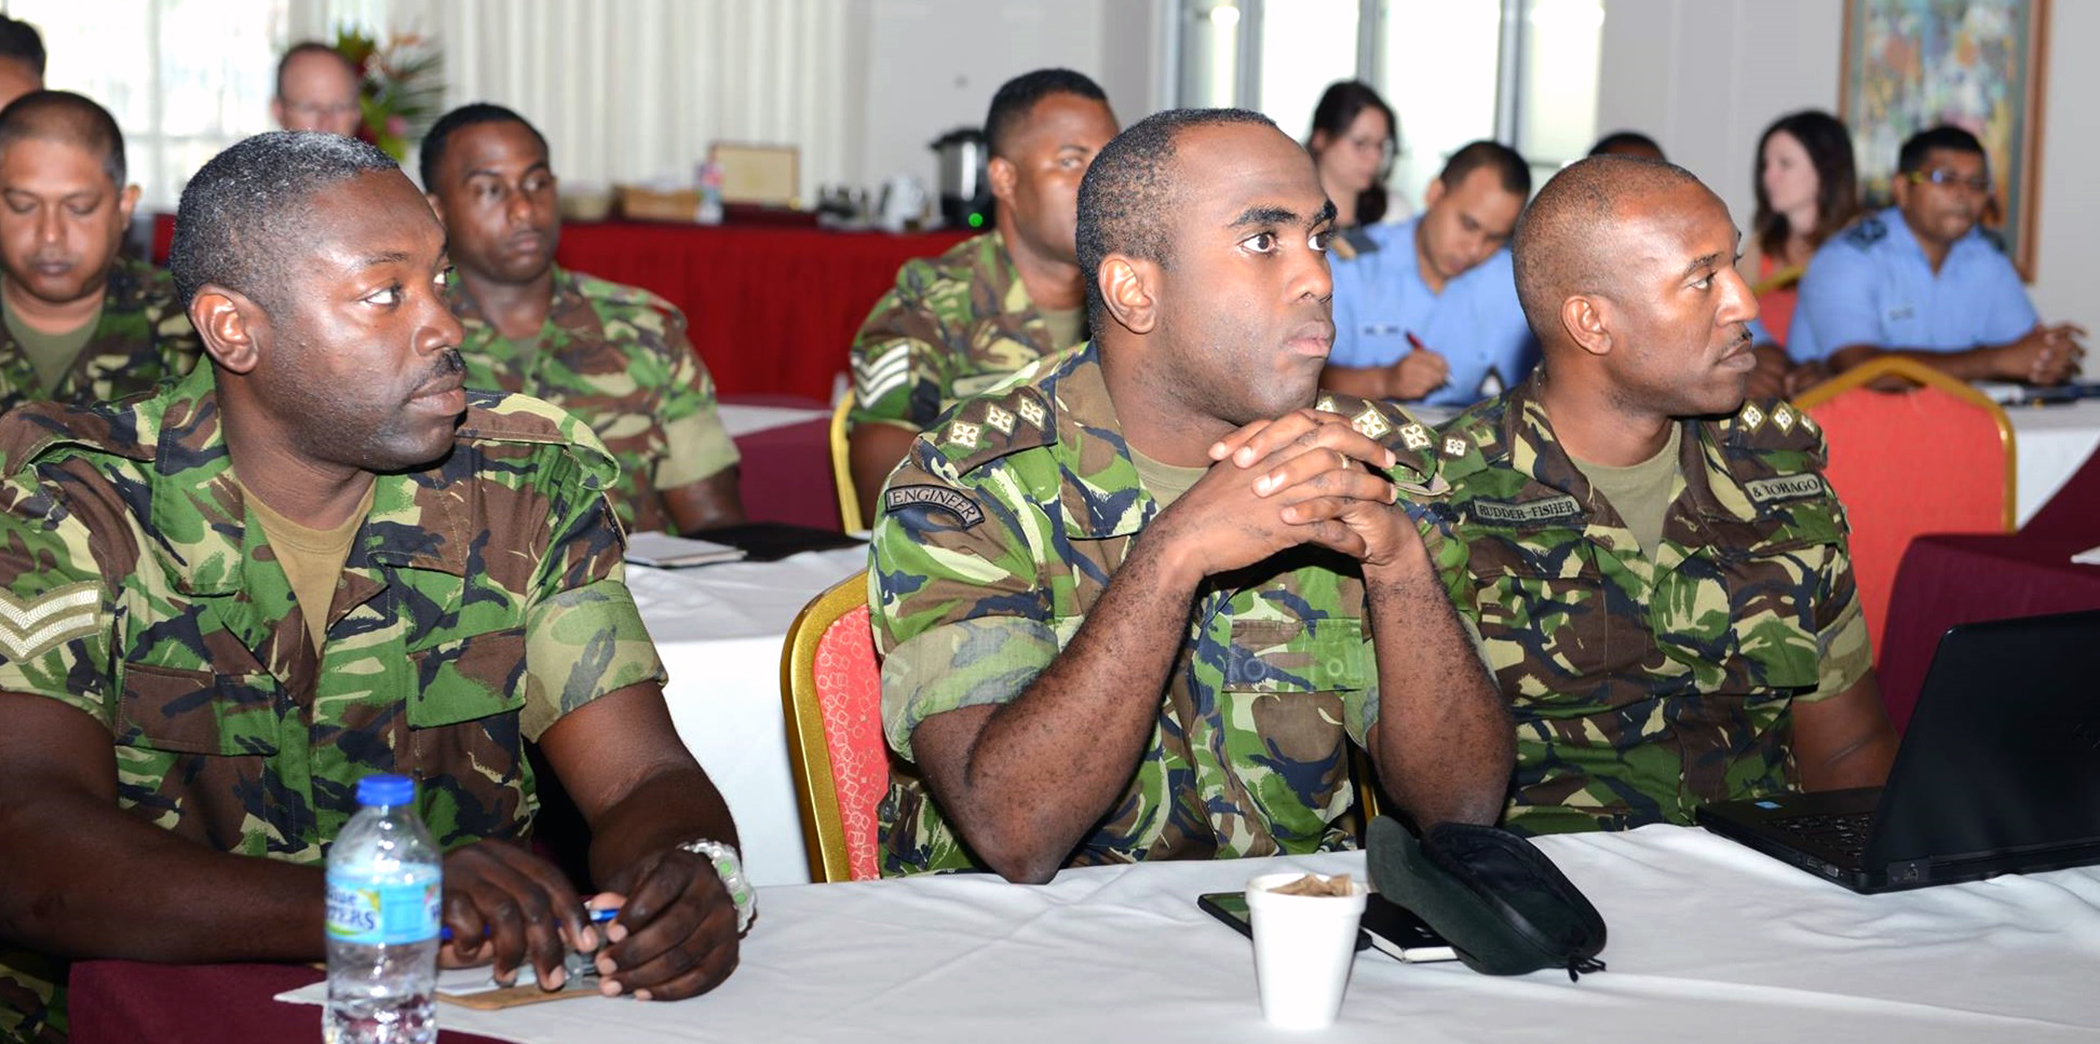 Army South Facilitates Trinidad And Tobago Defense Force